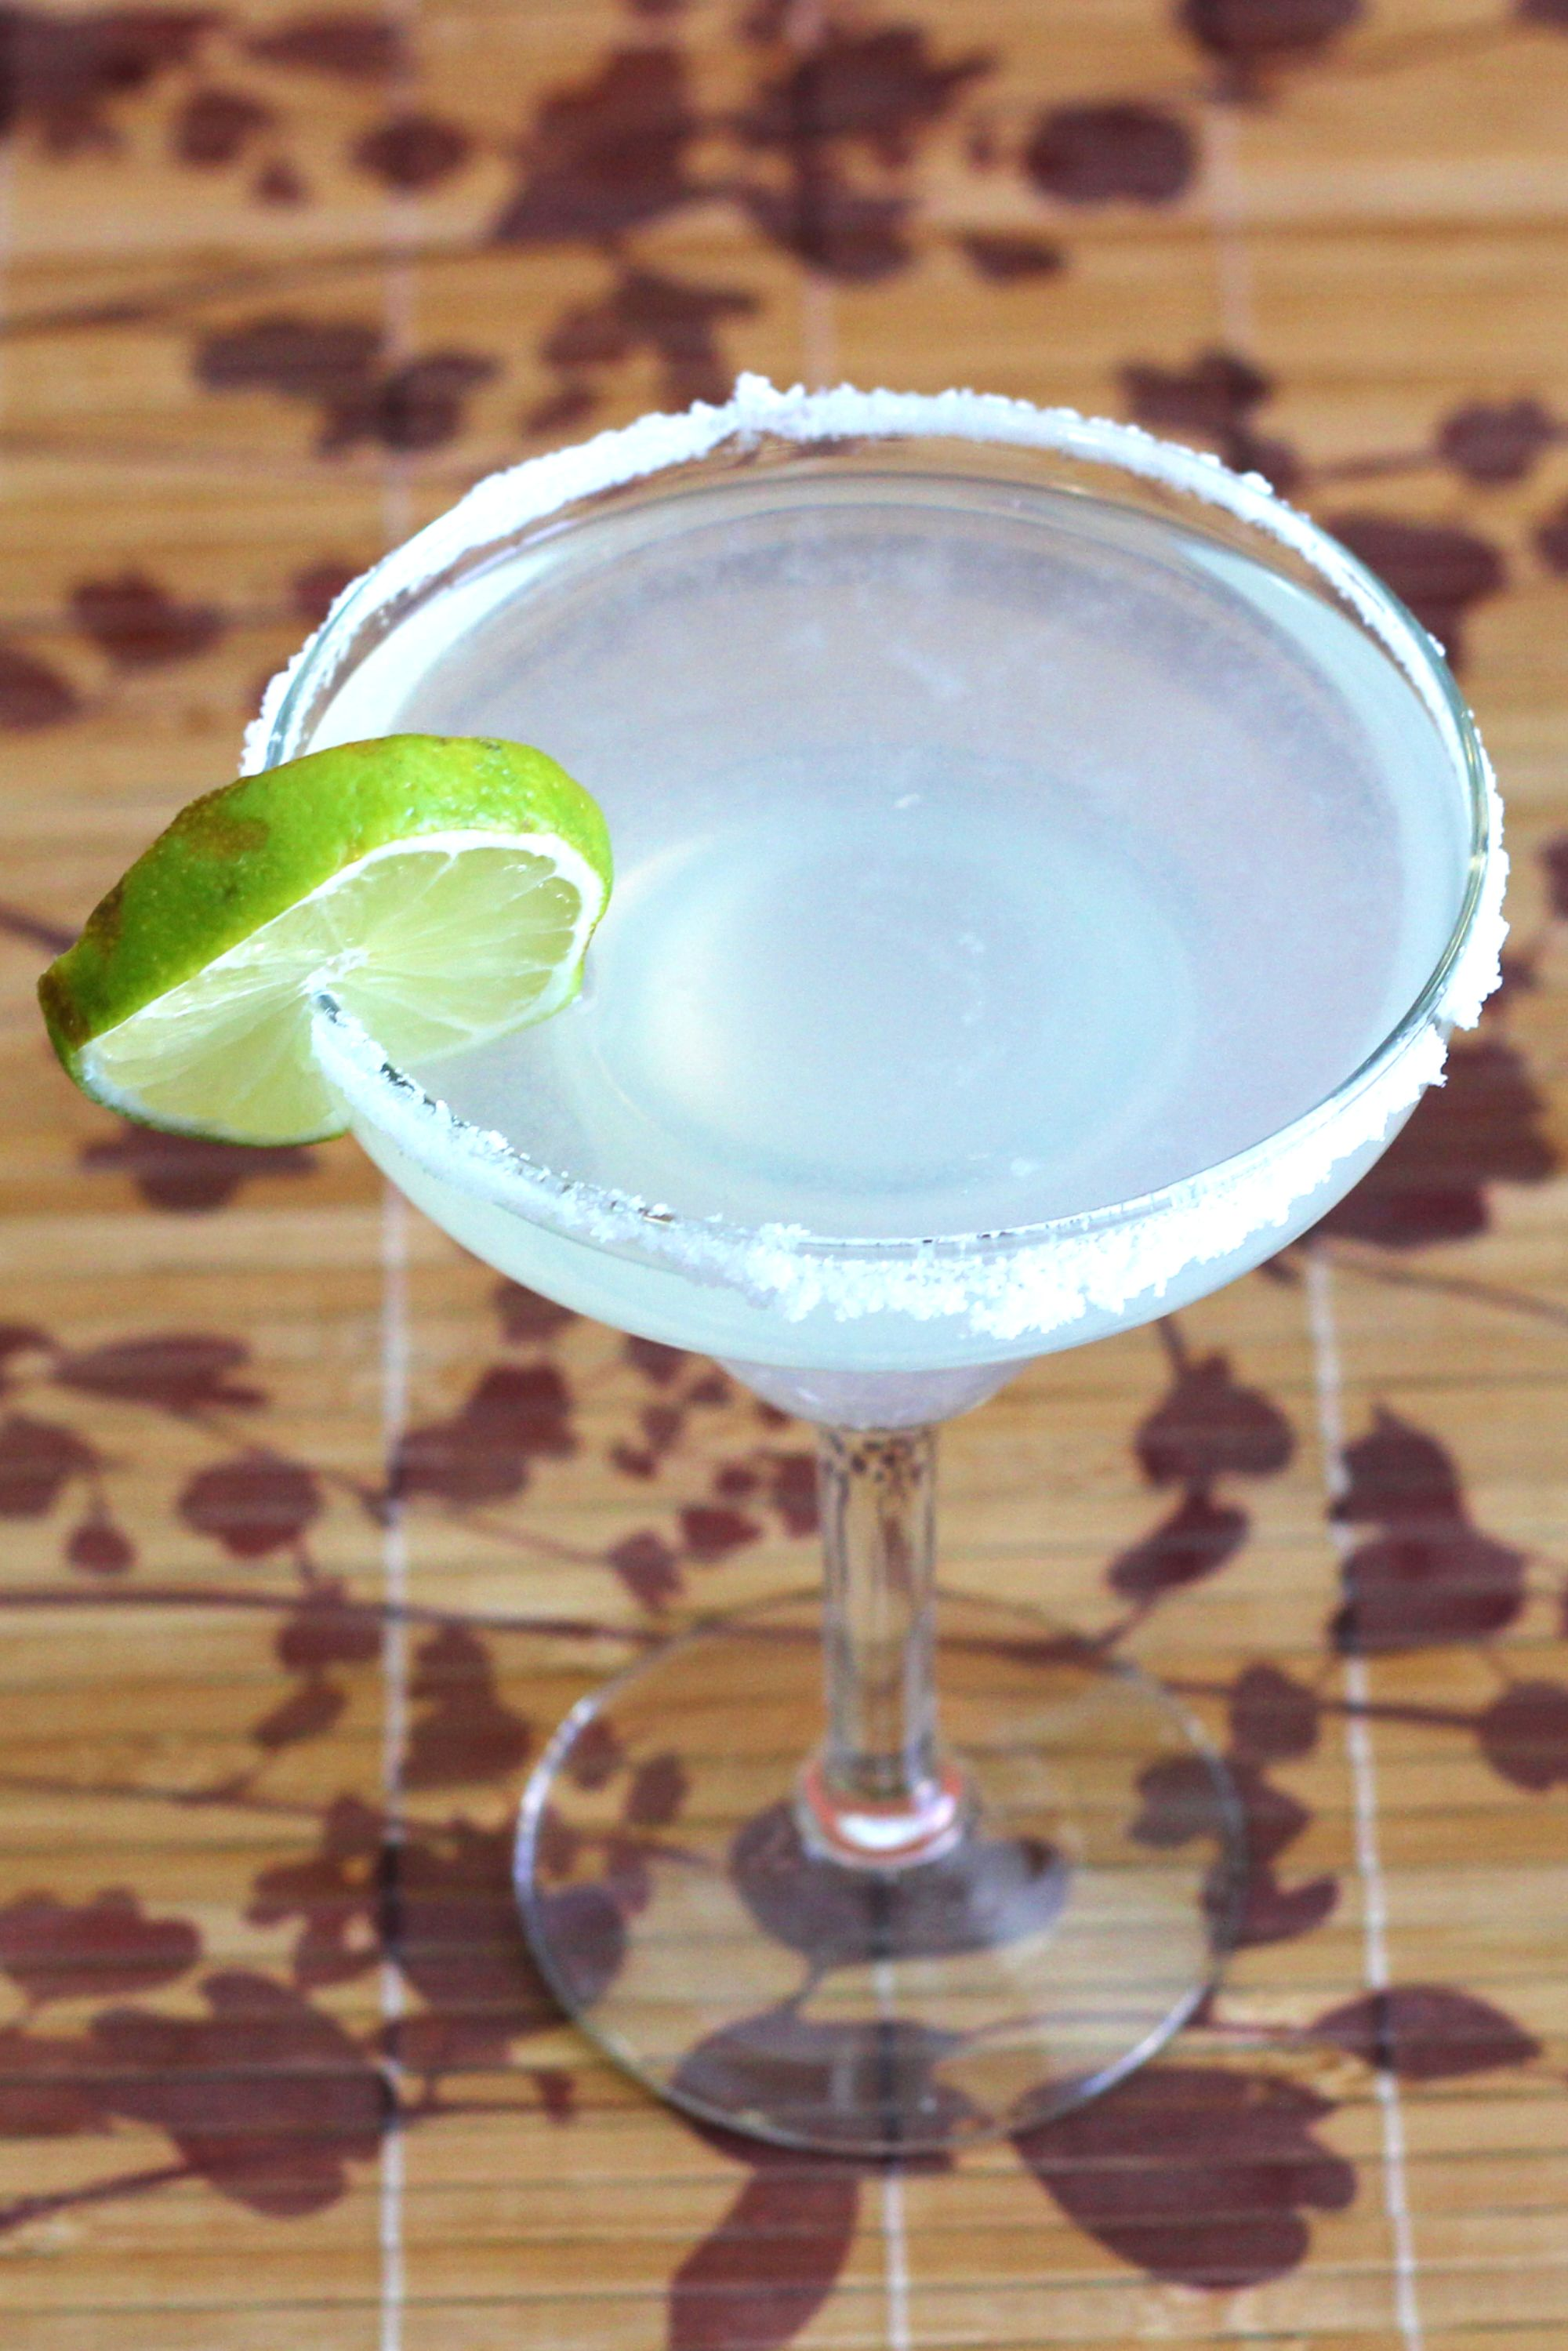 Margarita rimmed with salt